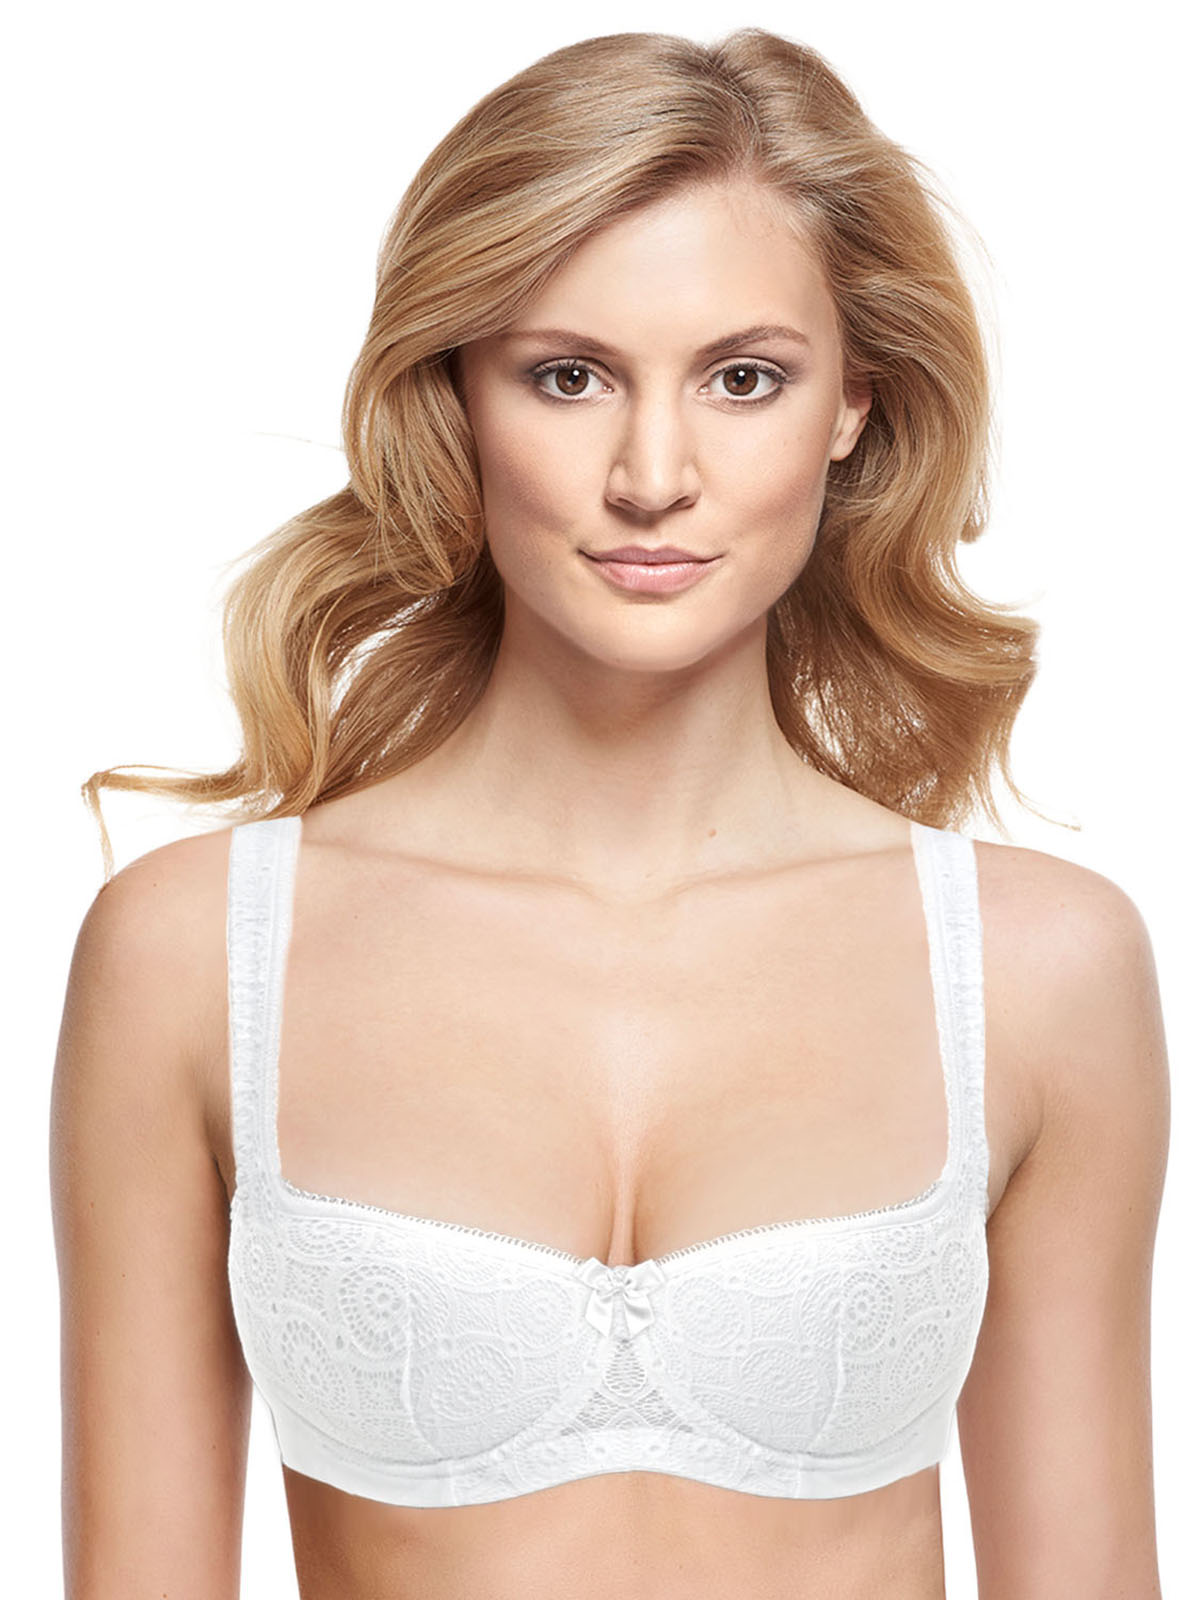 Dominique 8103 Low plunge underwired foam lined Strapless Bra Bridal Lingerie